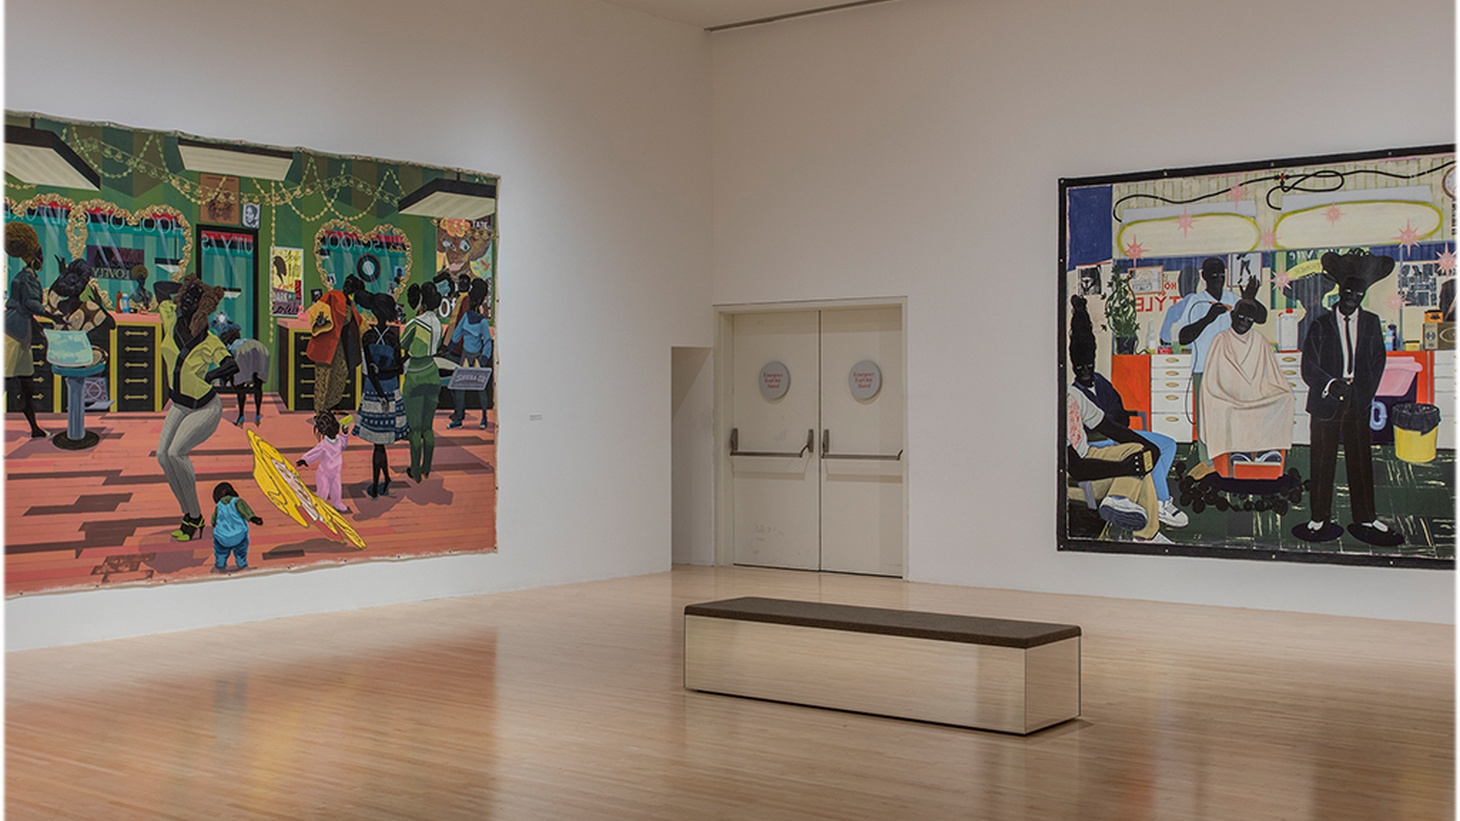 Press Play goes to LA's Museum of Contemporary Art to check out a 35-year retrospective of Kerry James Marshall's work. Marshall's paintings depict everyday black life, landscapes and historical events. Some of the pieces take up entire walls.